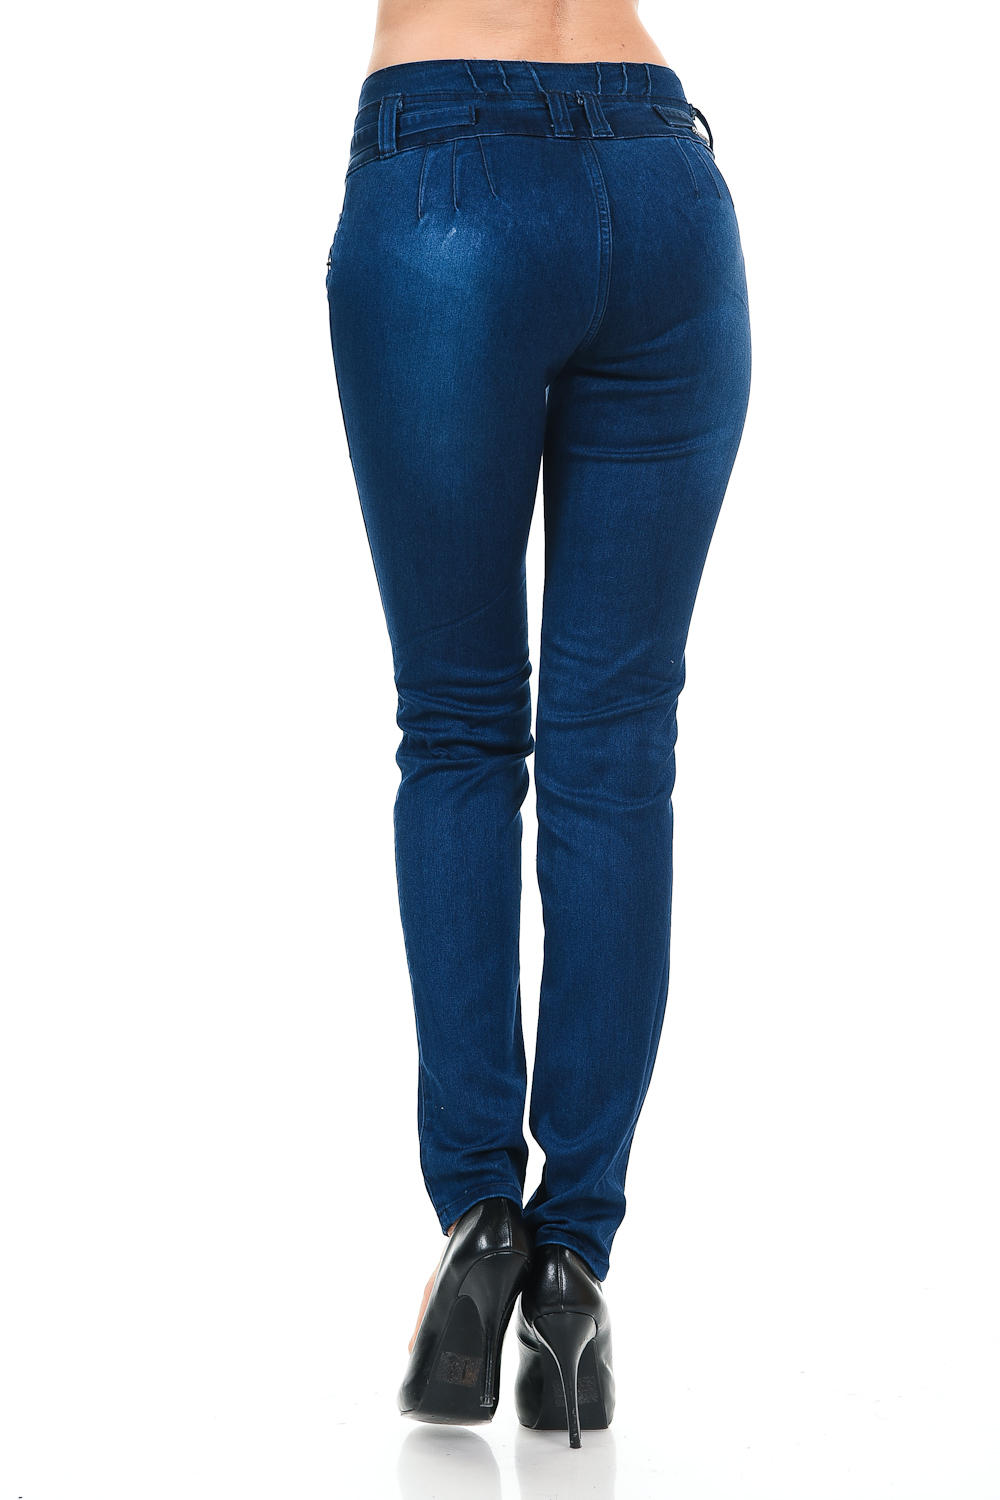 M.Michel Jeans Colombian, Push Up - YC32